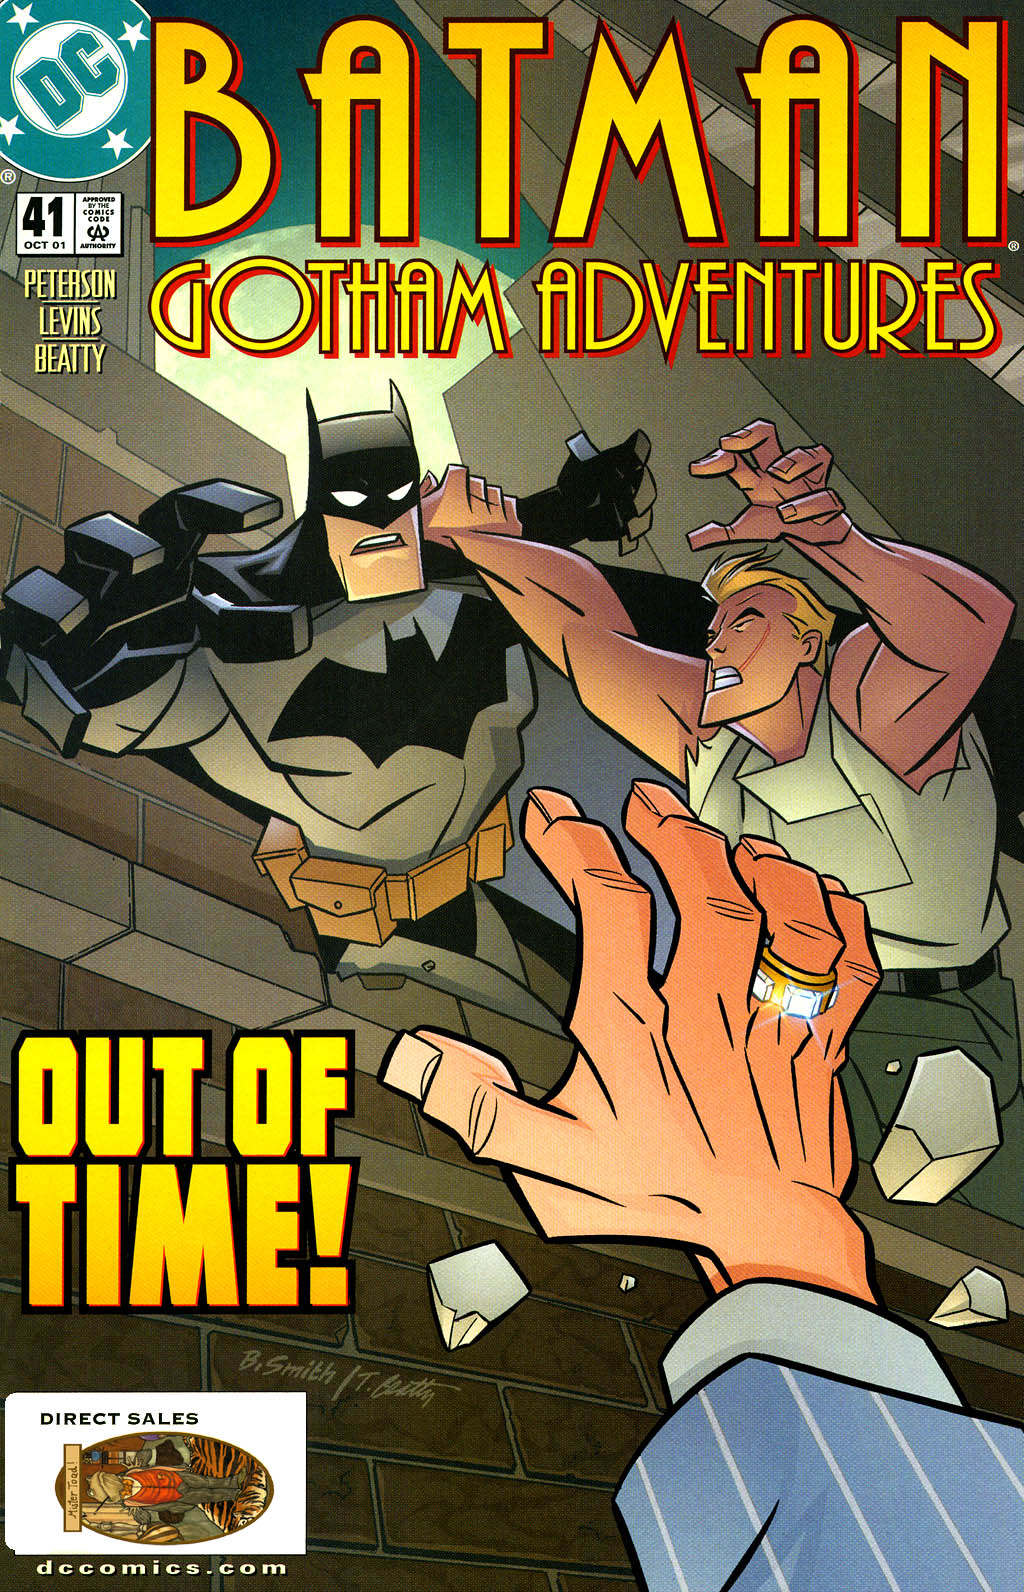 Batman: Gotham Adventures 41 Page 1